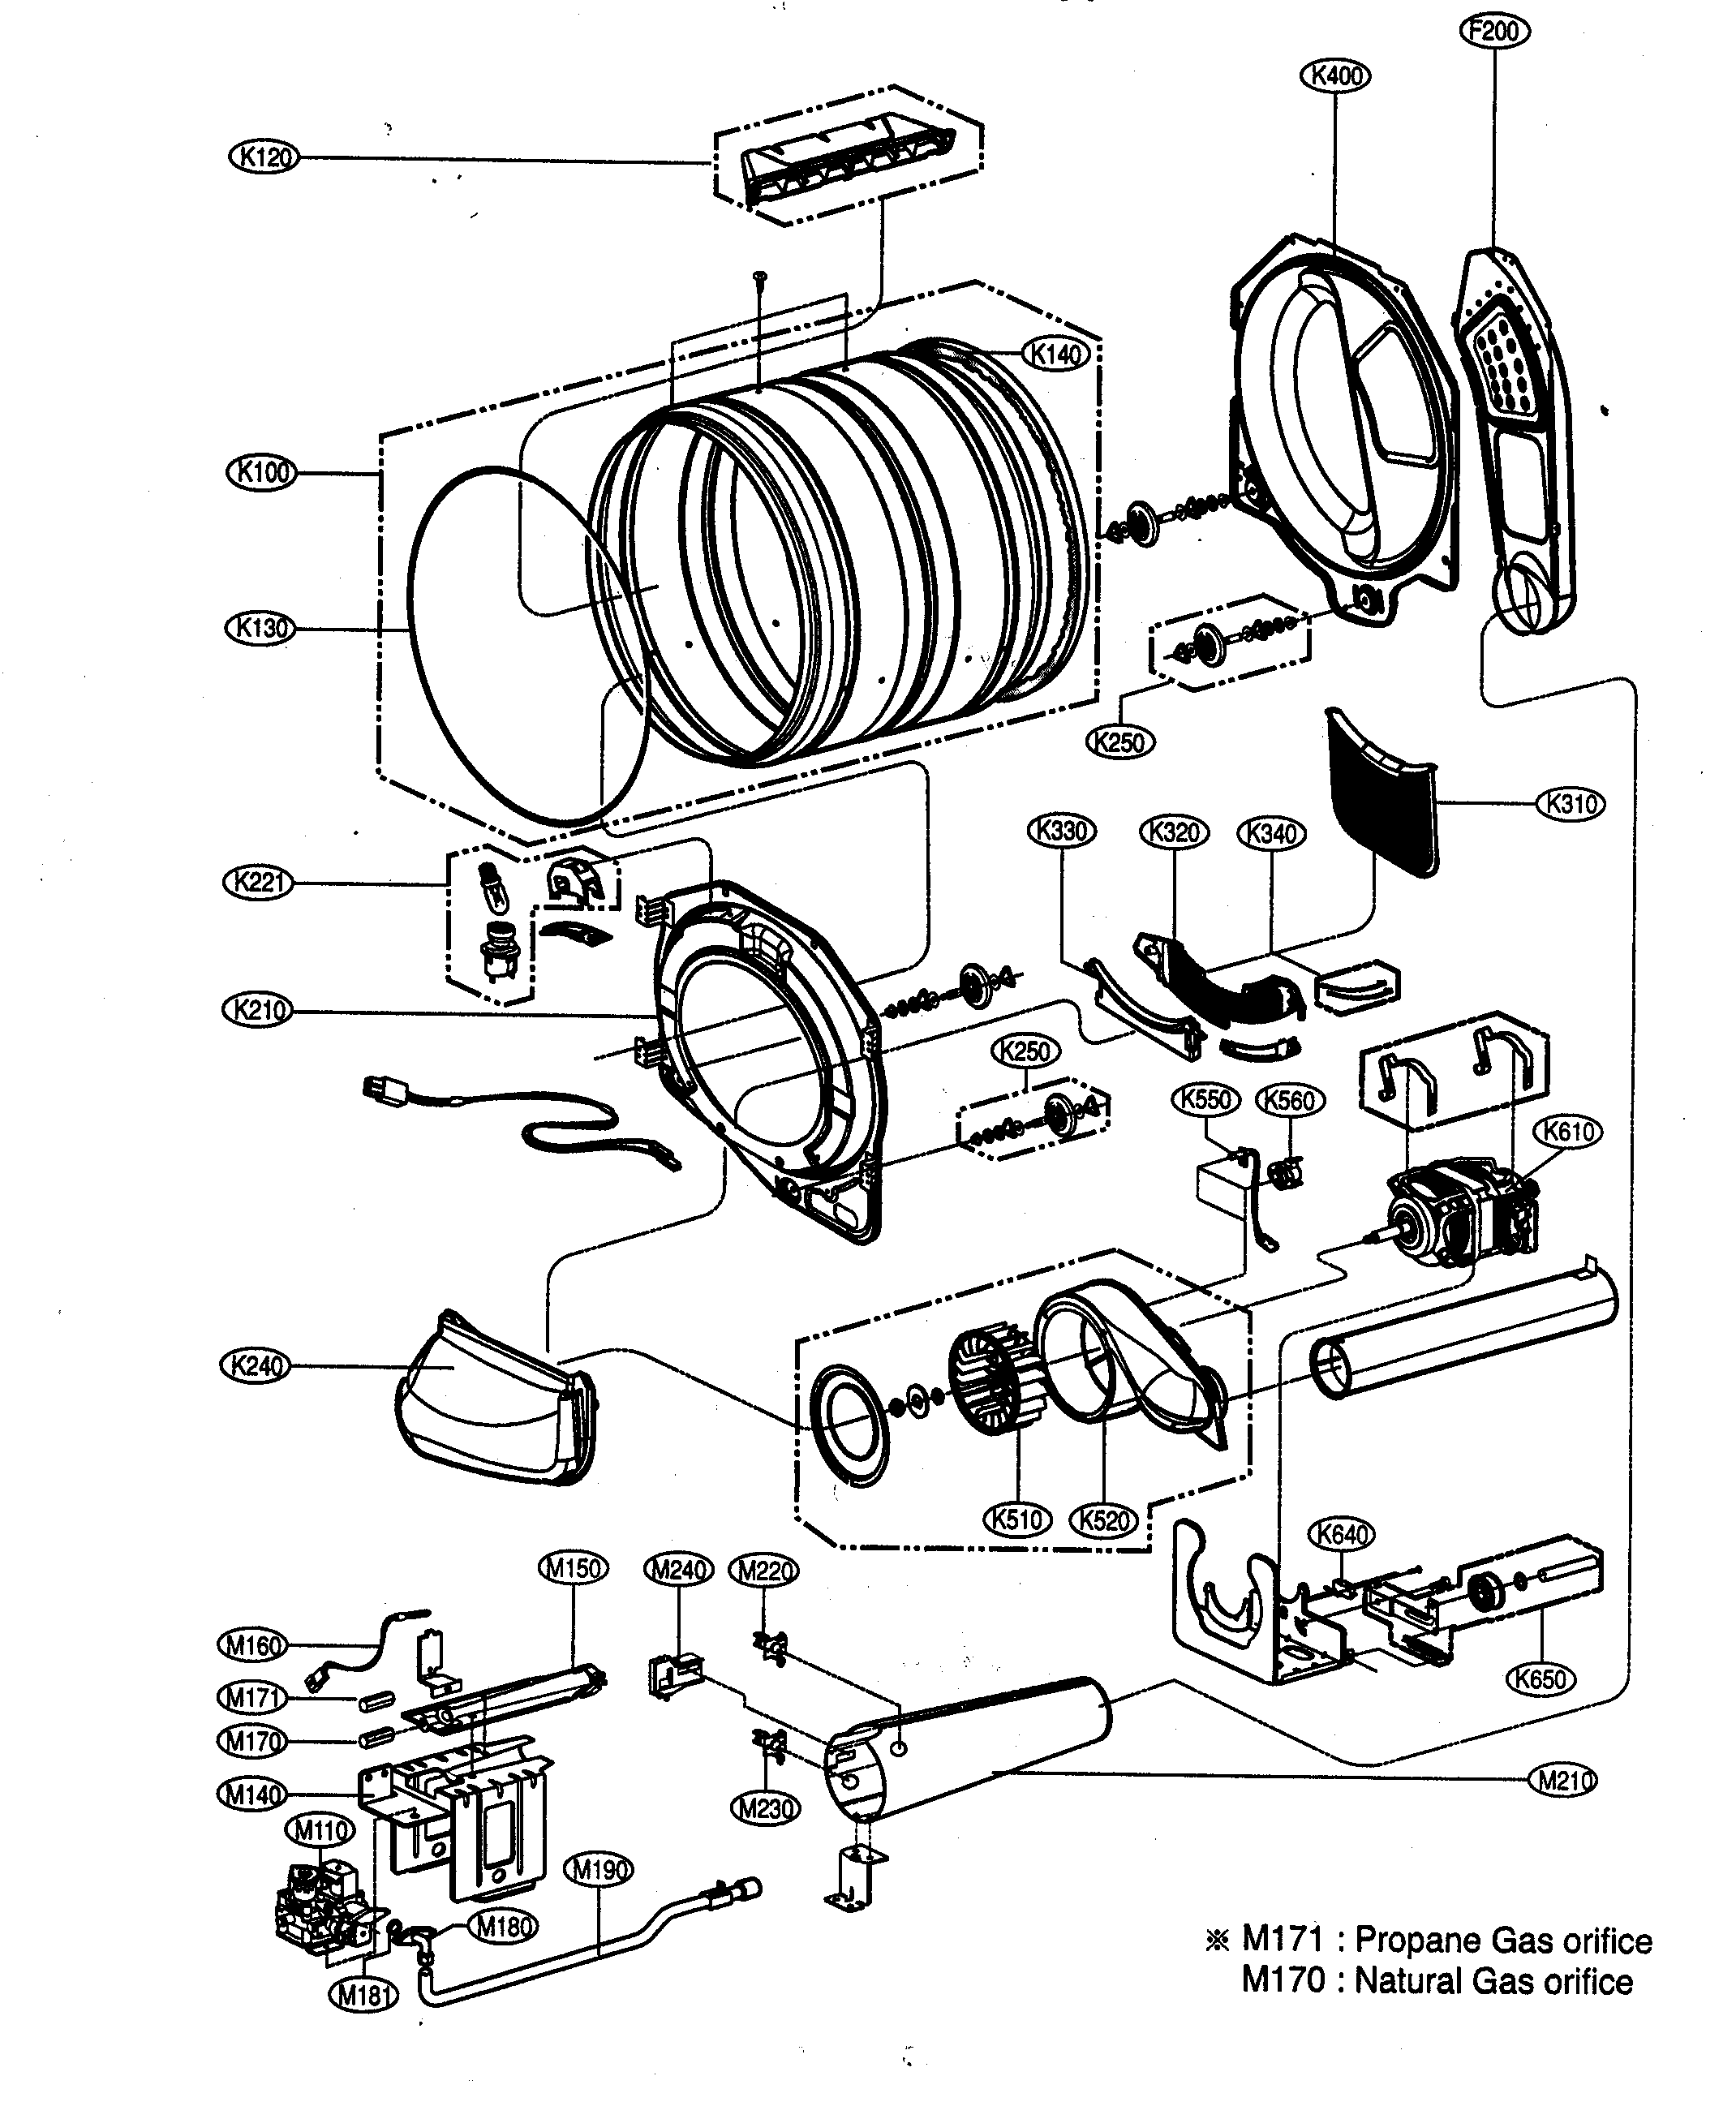 DRUM/MOTOR ASSY Diagram & Parts List for Model dlg5988w LG